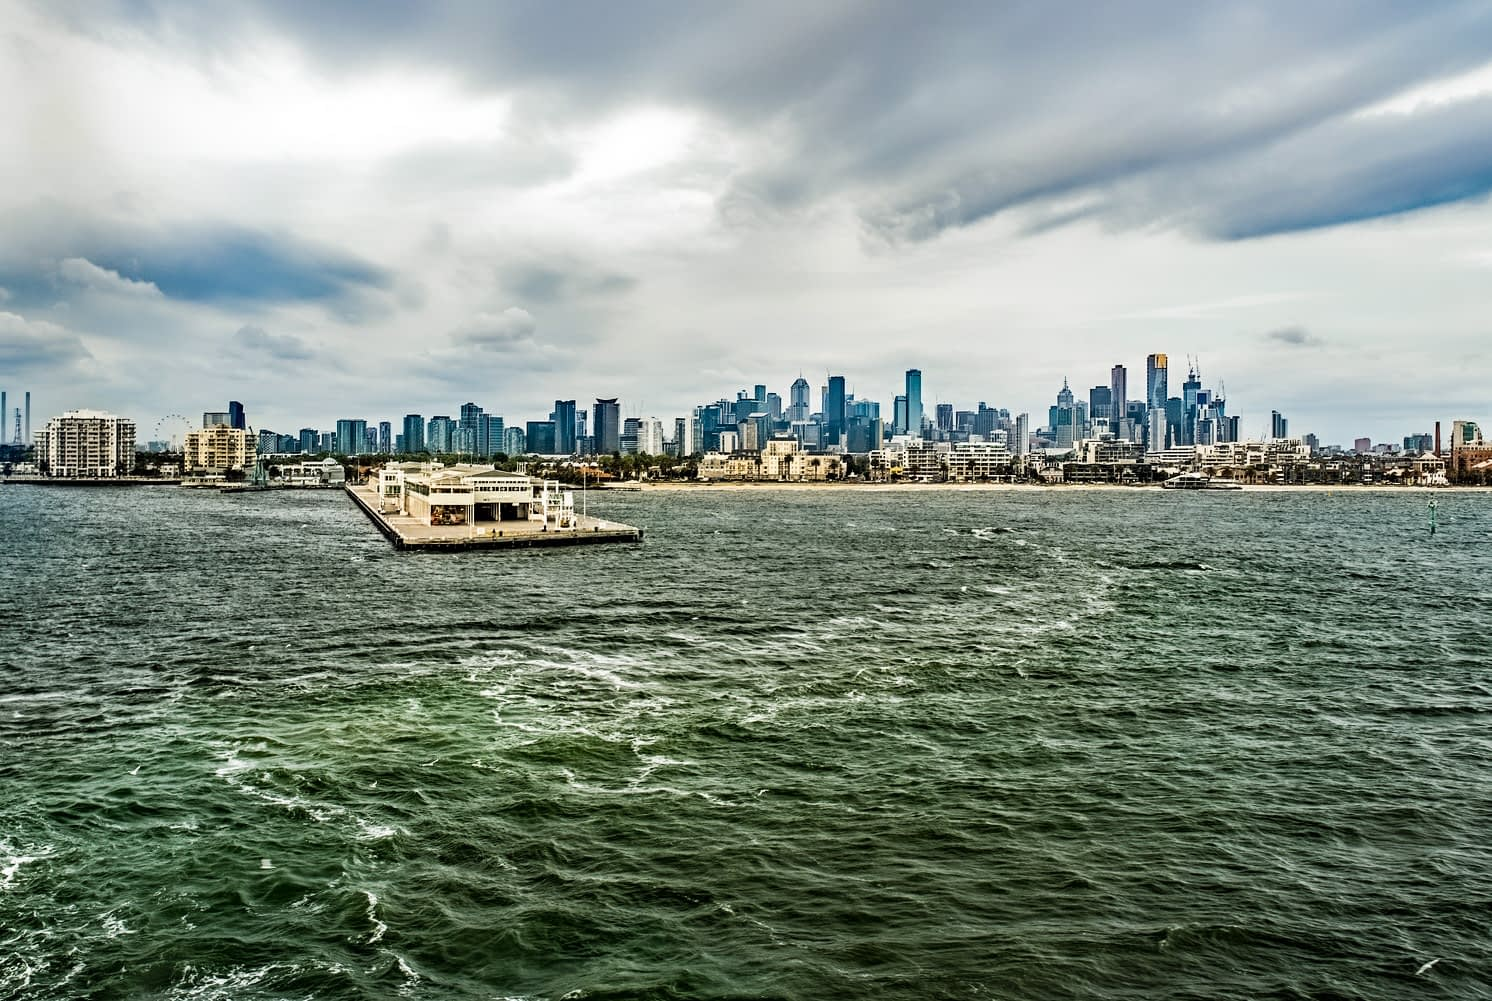 Spirit of Tasmania Ferry - Melbourne City Skyline view from the Ferry - Lap of Tasmania